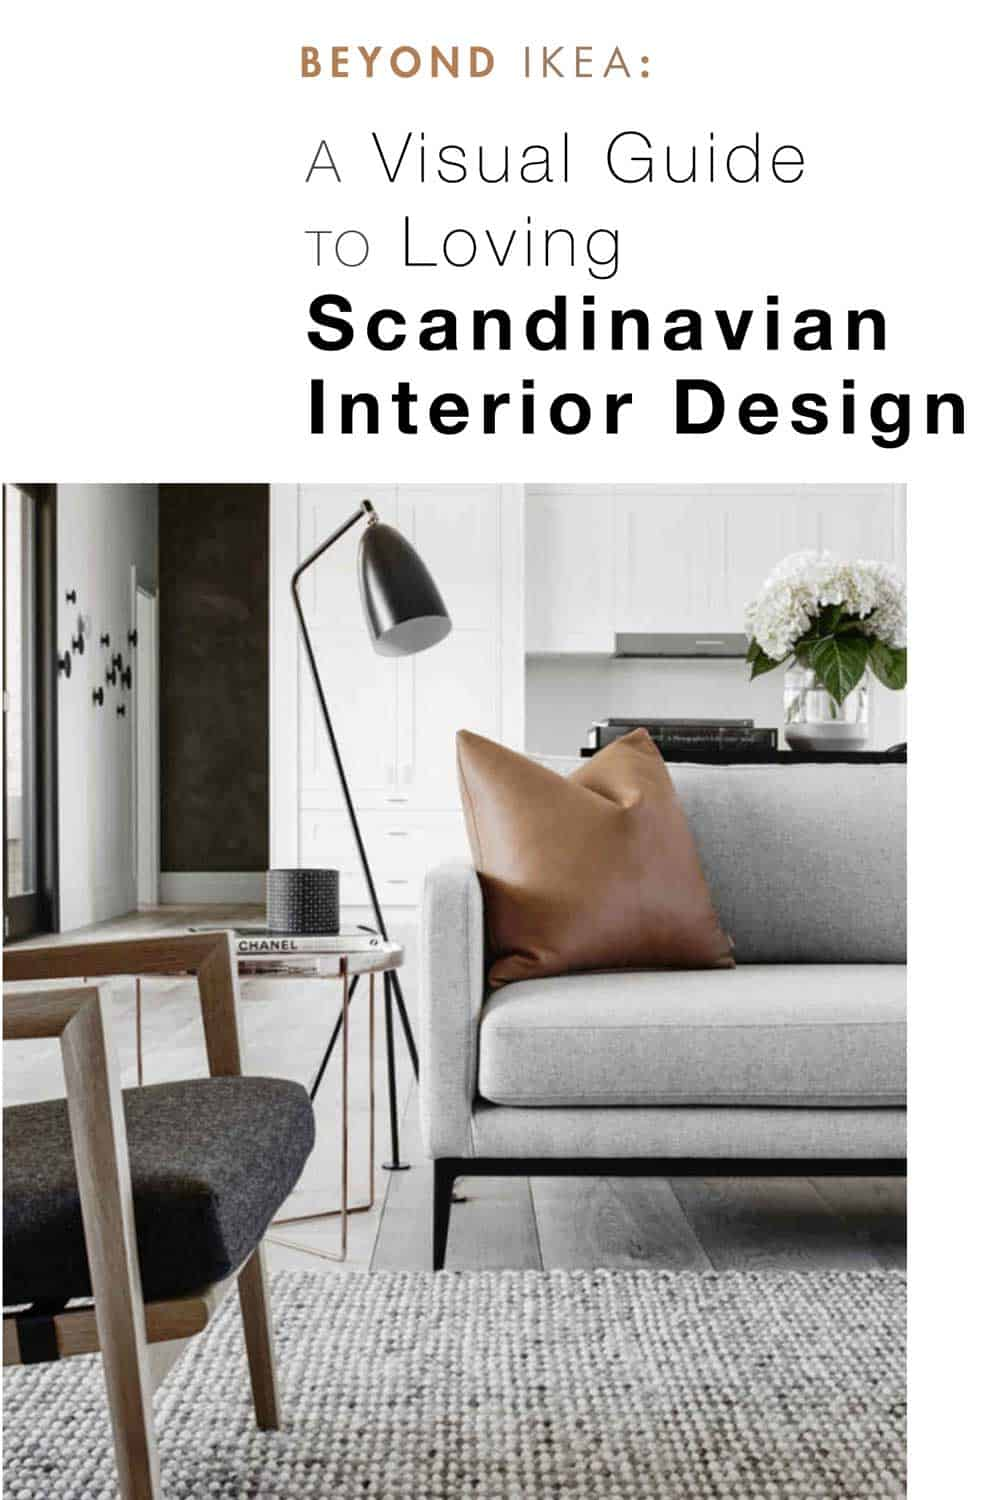 Beyond Ikea A Visual Guide To Loving Scandinavian Interior Design Primer,Concept Interior Design Mood Board